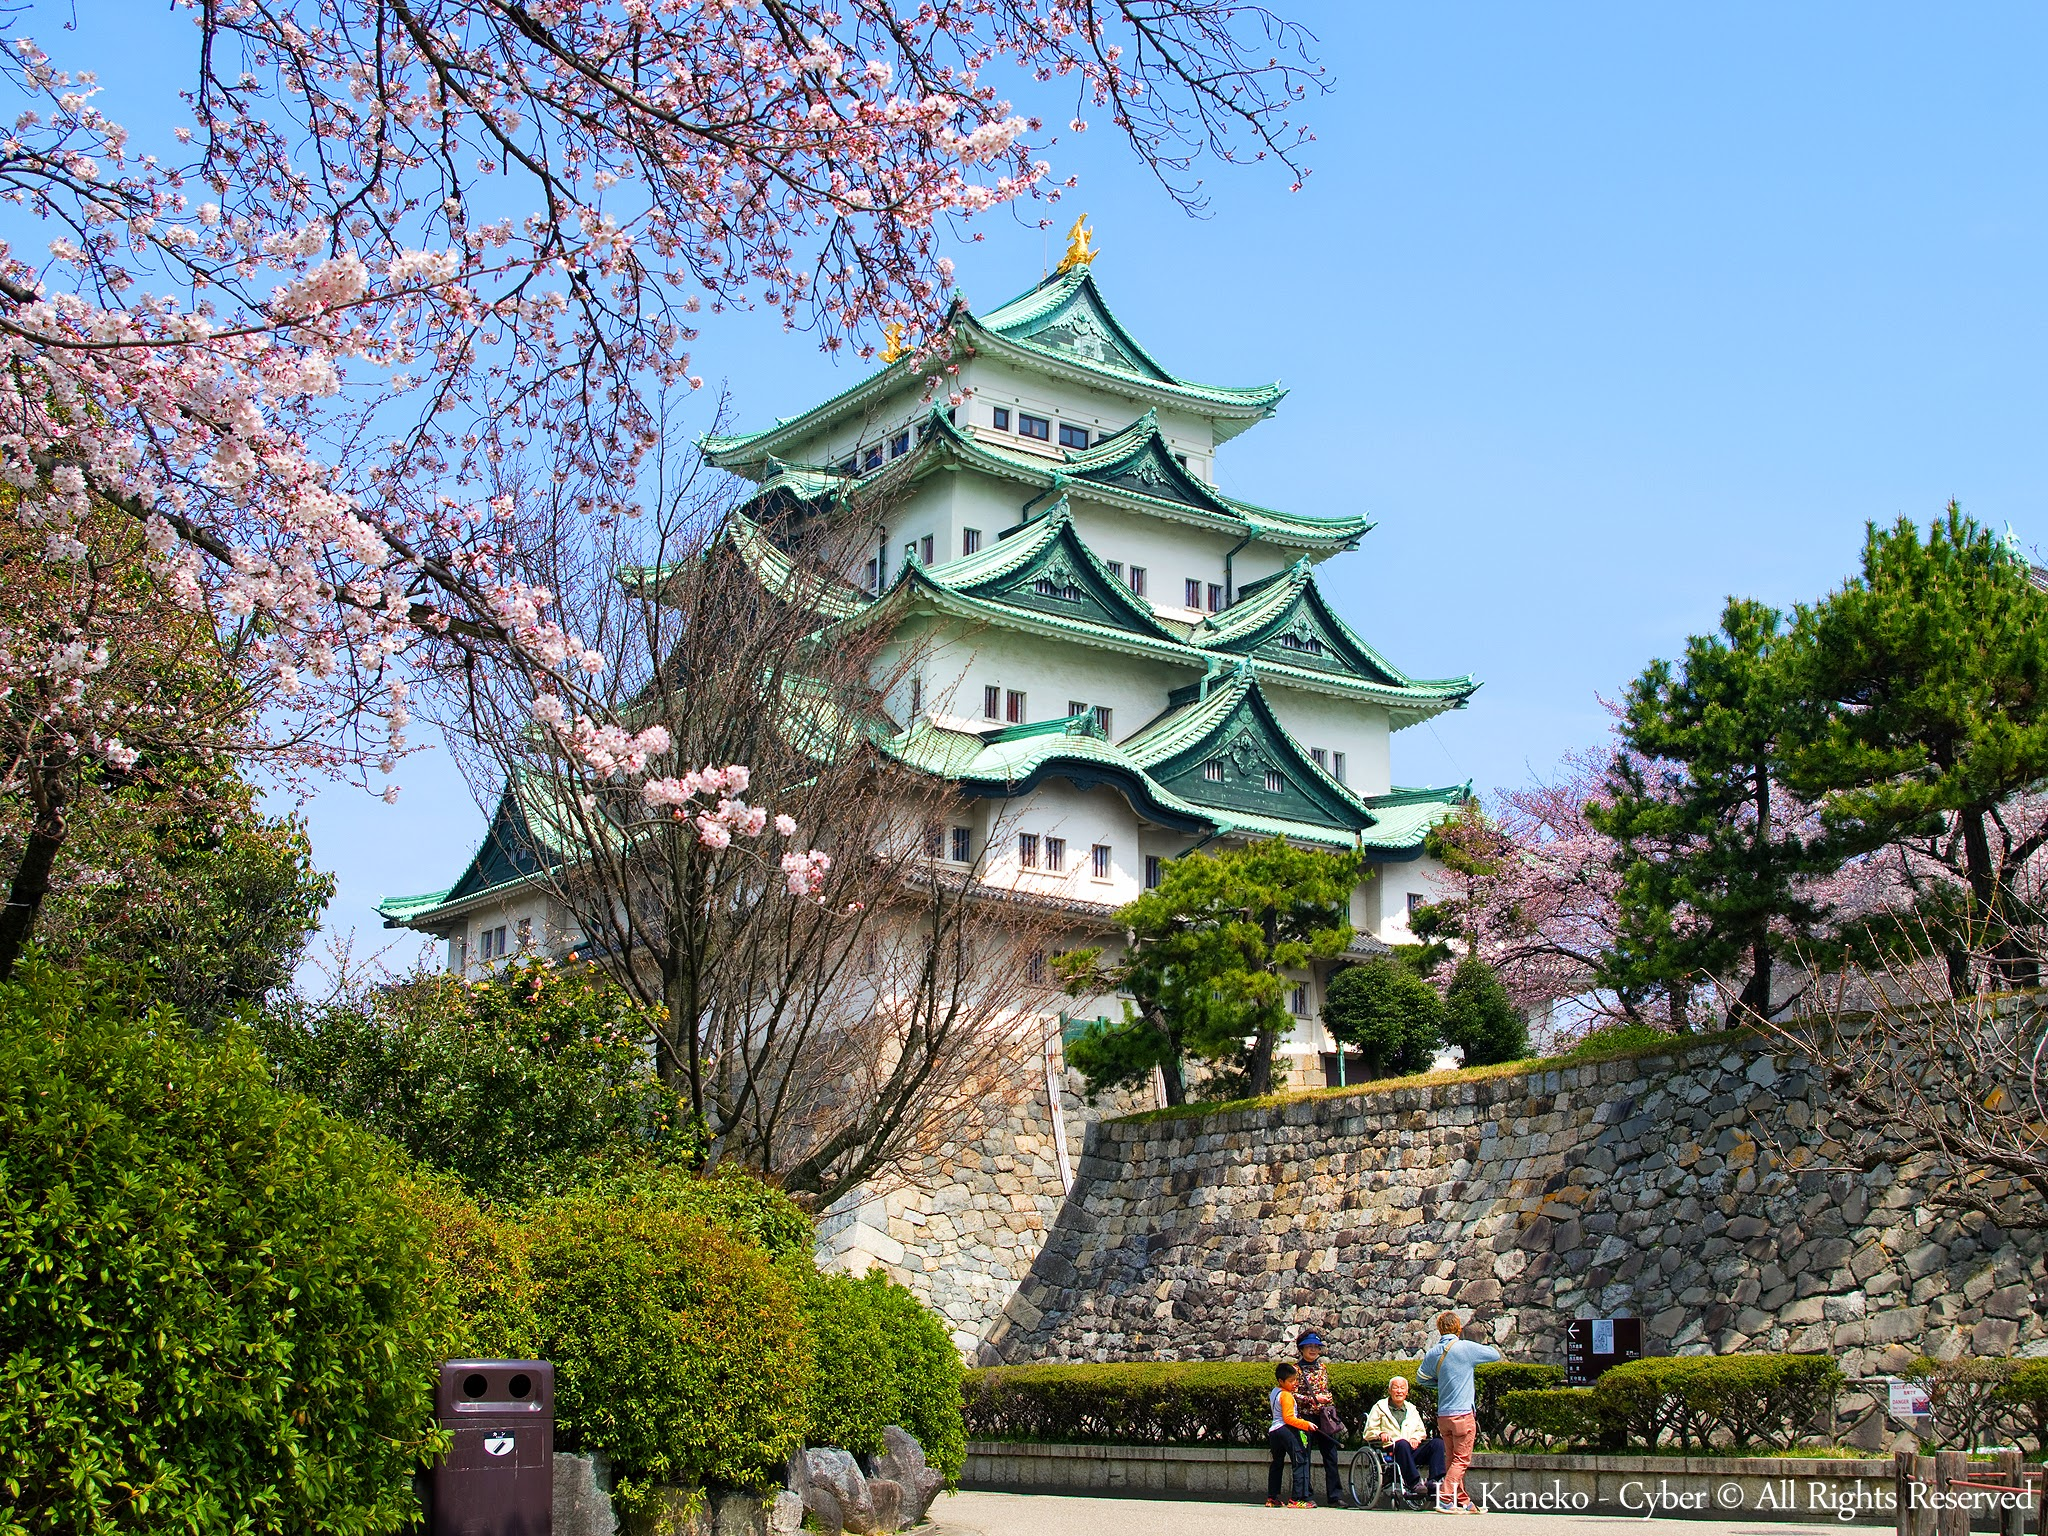 桜と名古屋城(Nagoya_Castle_with_Cherry_blossoms)_31_Mar,_2016_-_panoramio.jpg